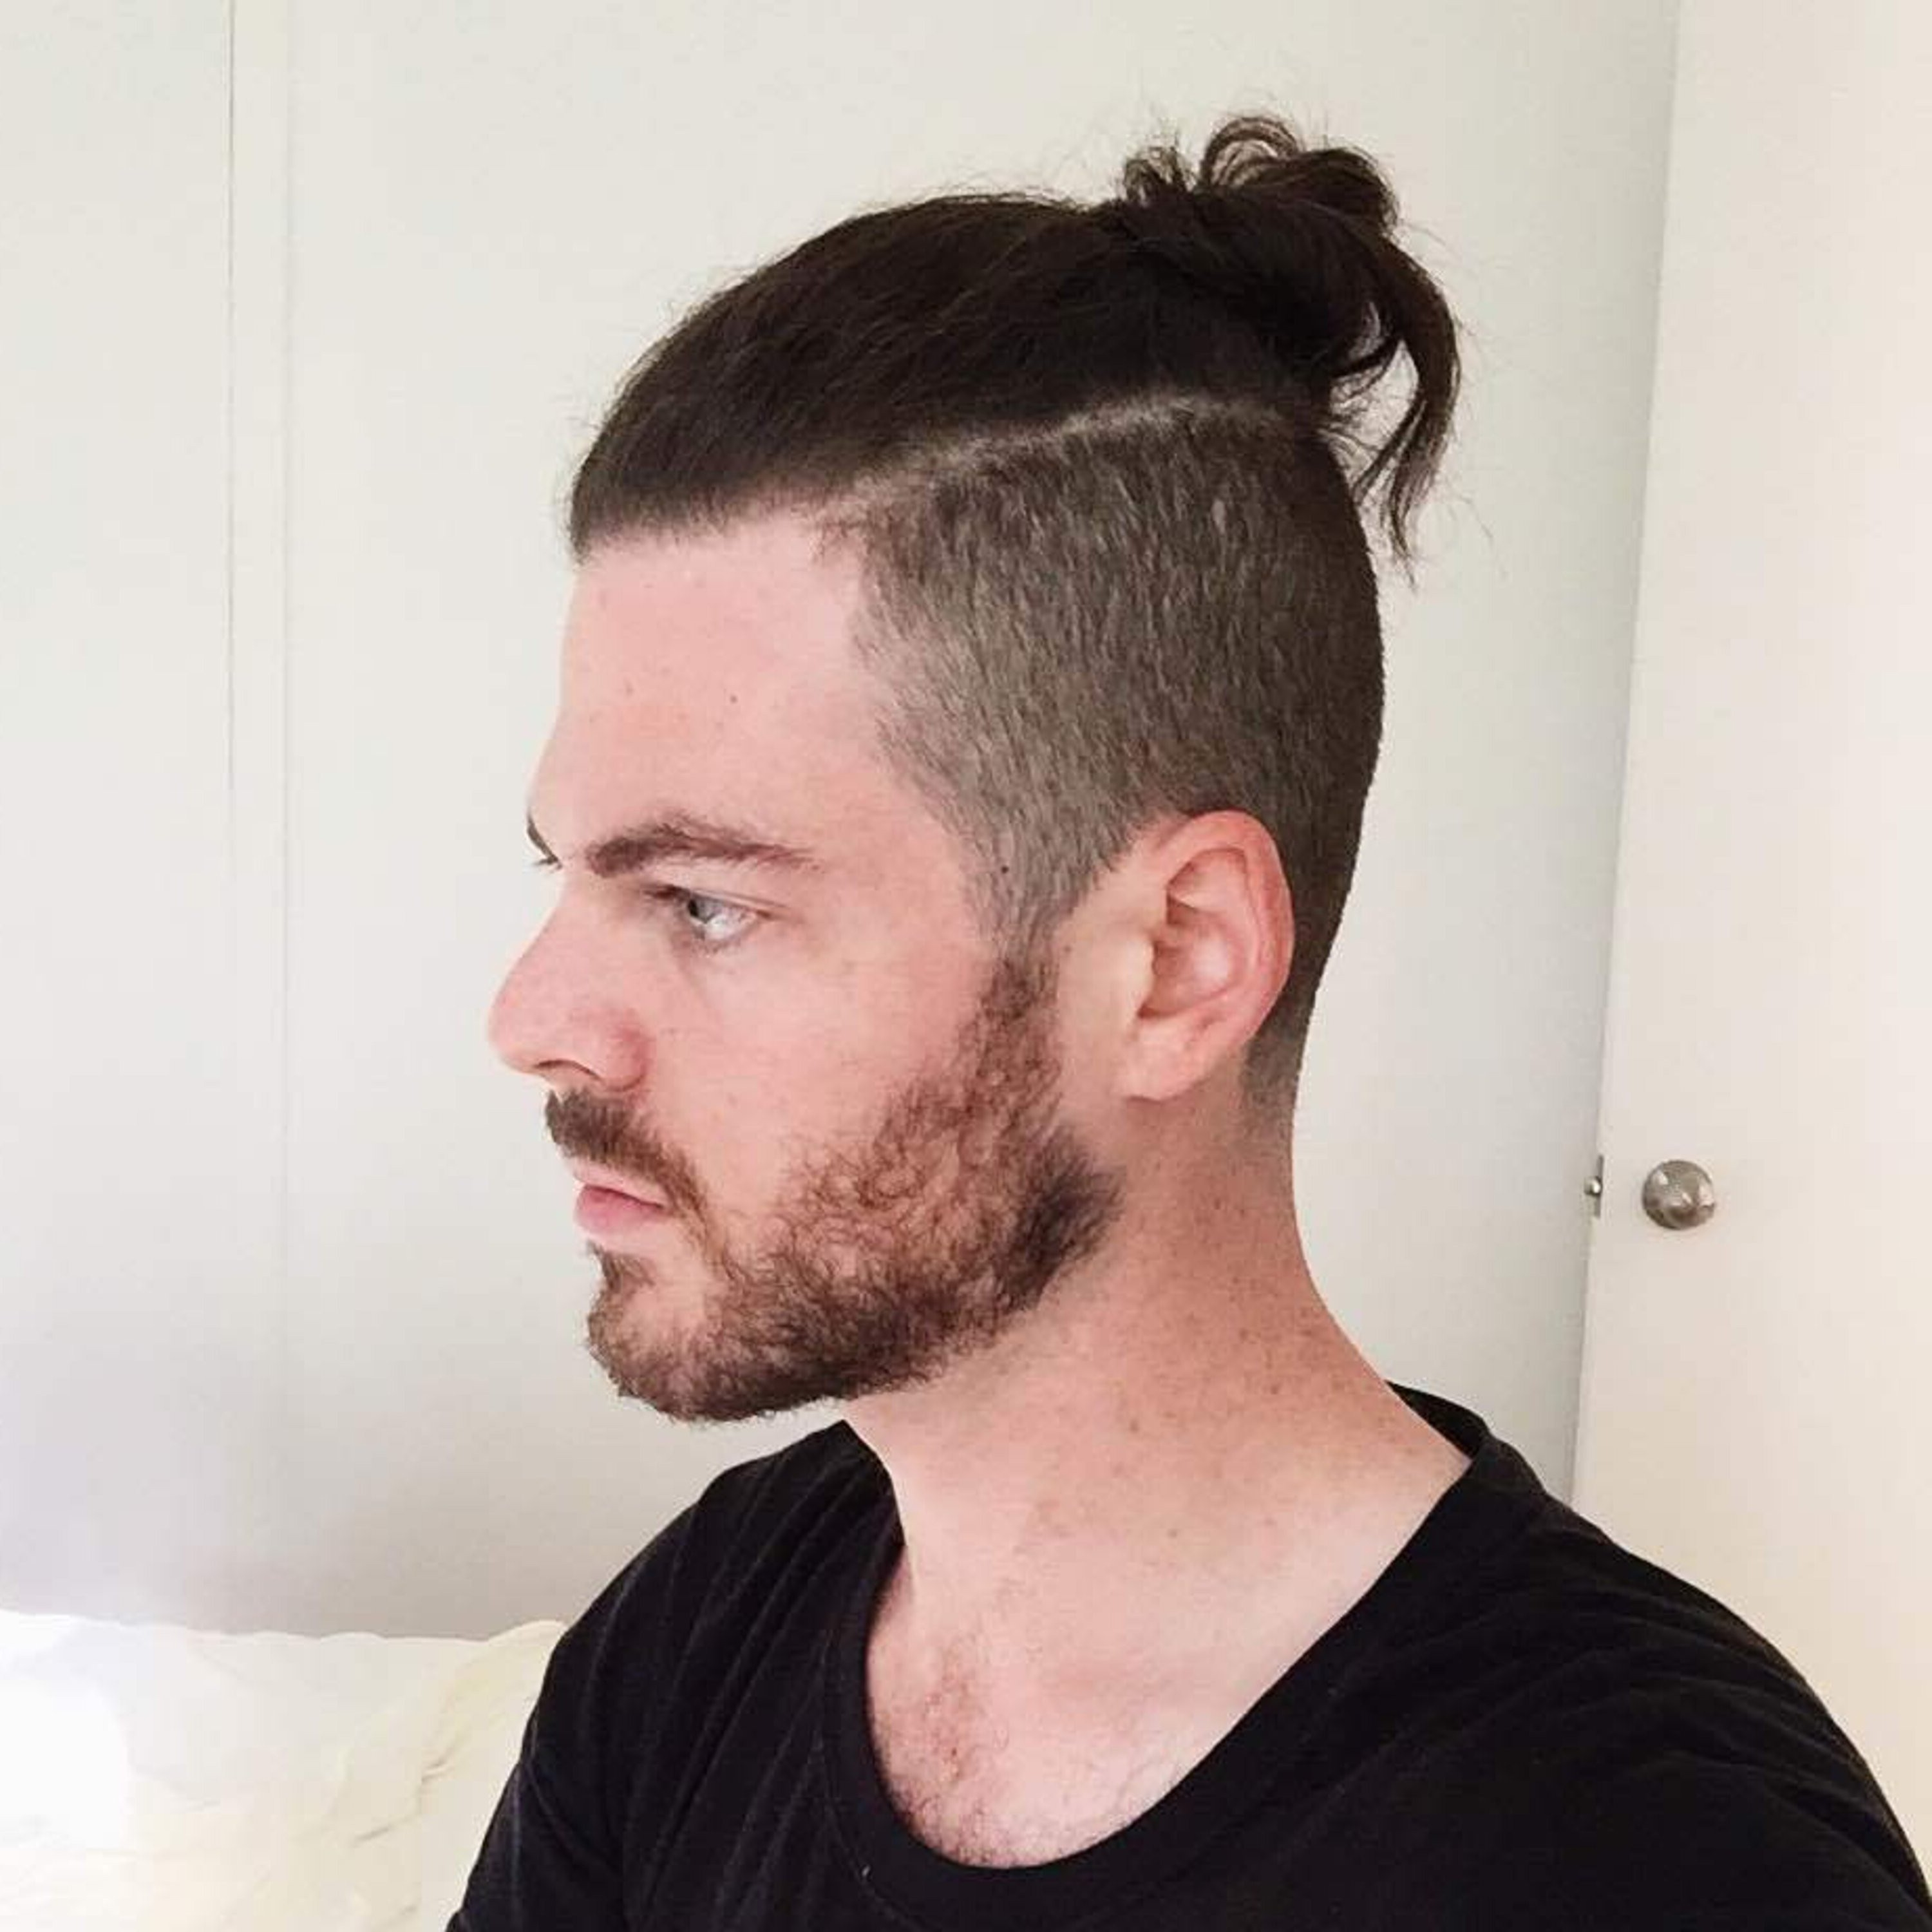 An ugly male bun hairstyle.